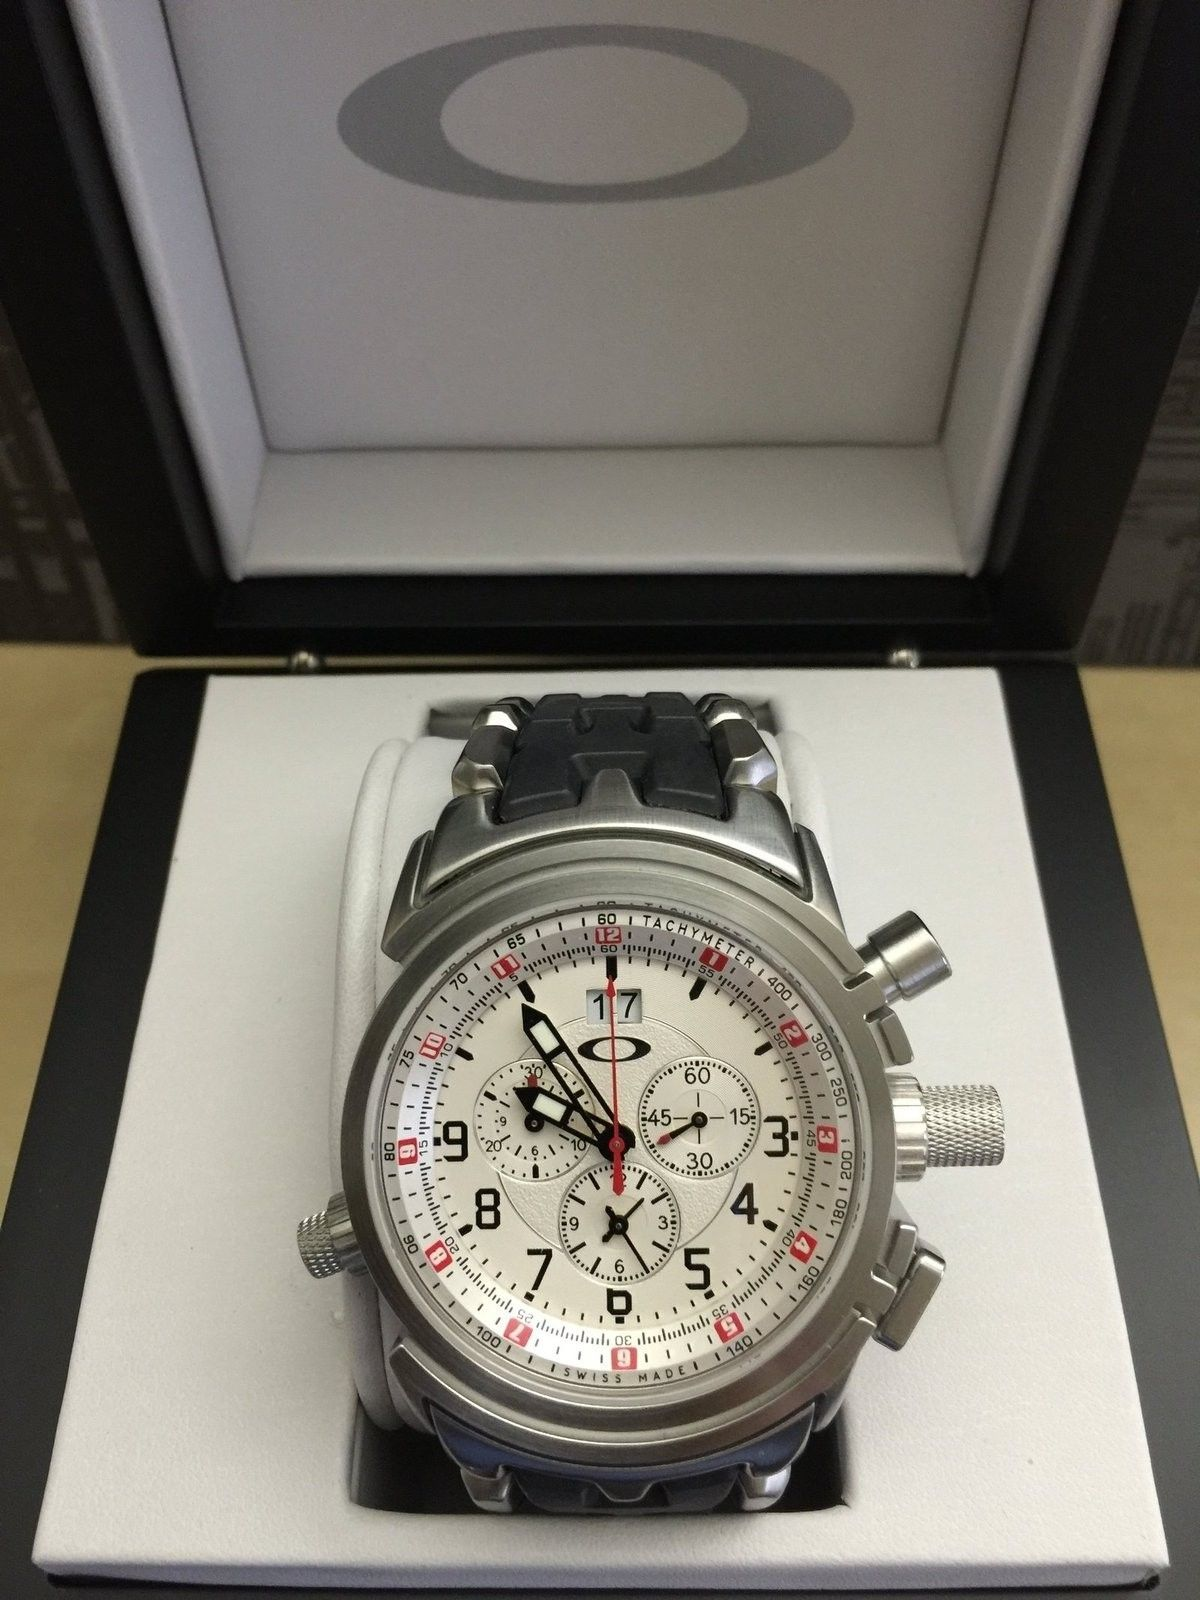 Watches for sale: Brand new 12 Gauge White Dial with Stainless Steel Bracelet (last one) - IMG_4443.JPG